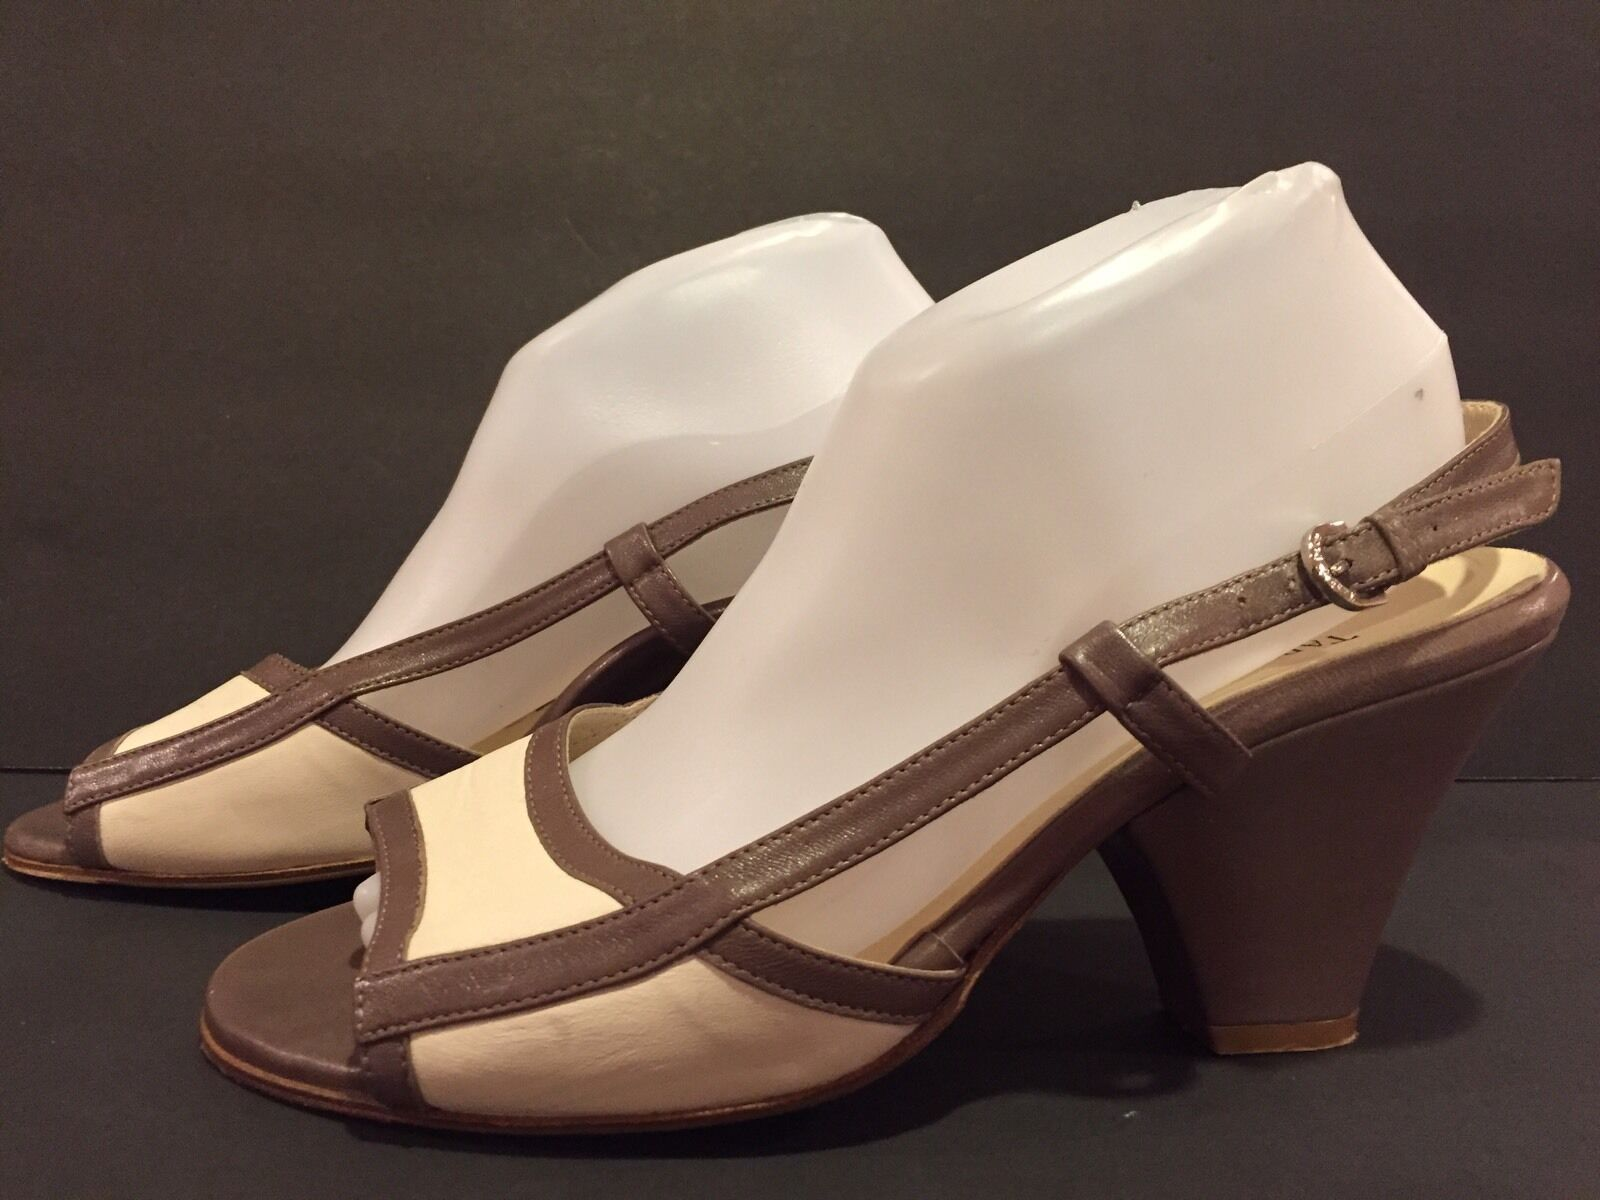 Taryn Rosa Sandals Pumps Heel Slingback Leather Leather Leather Bone Taupe 40 9.5-10  063288